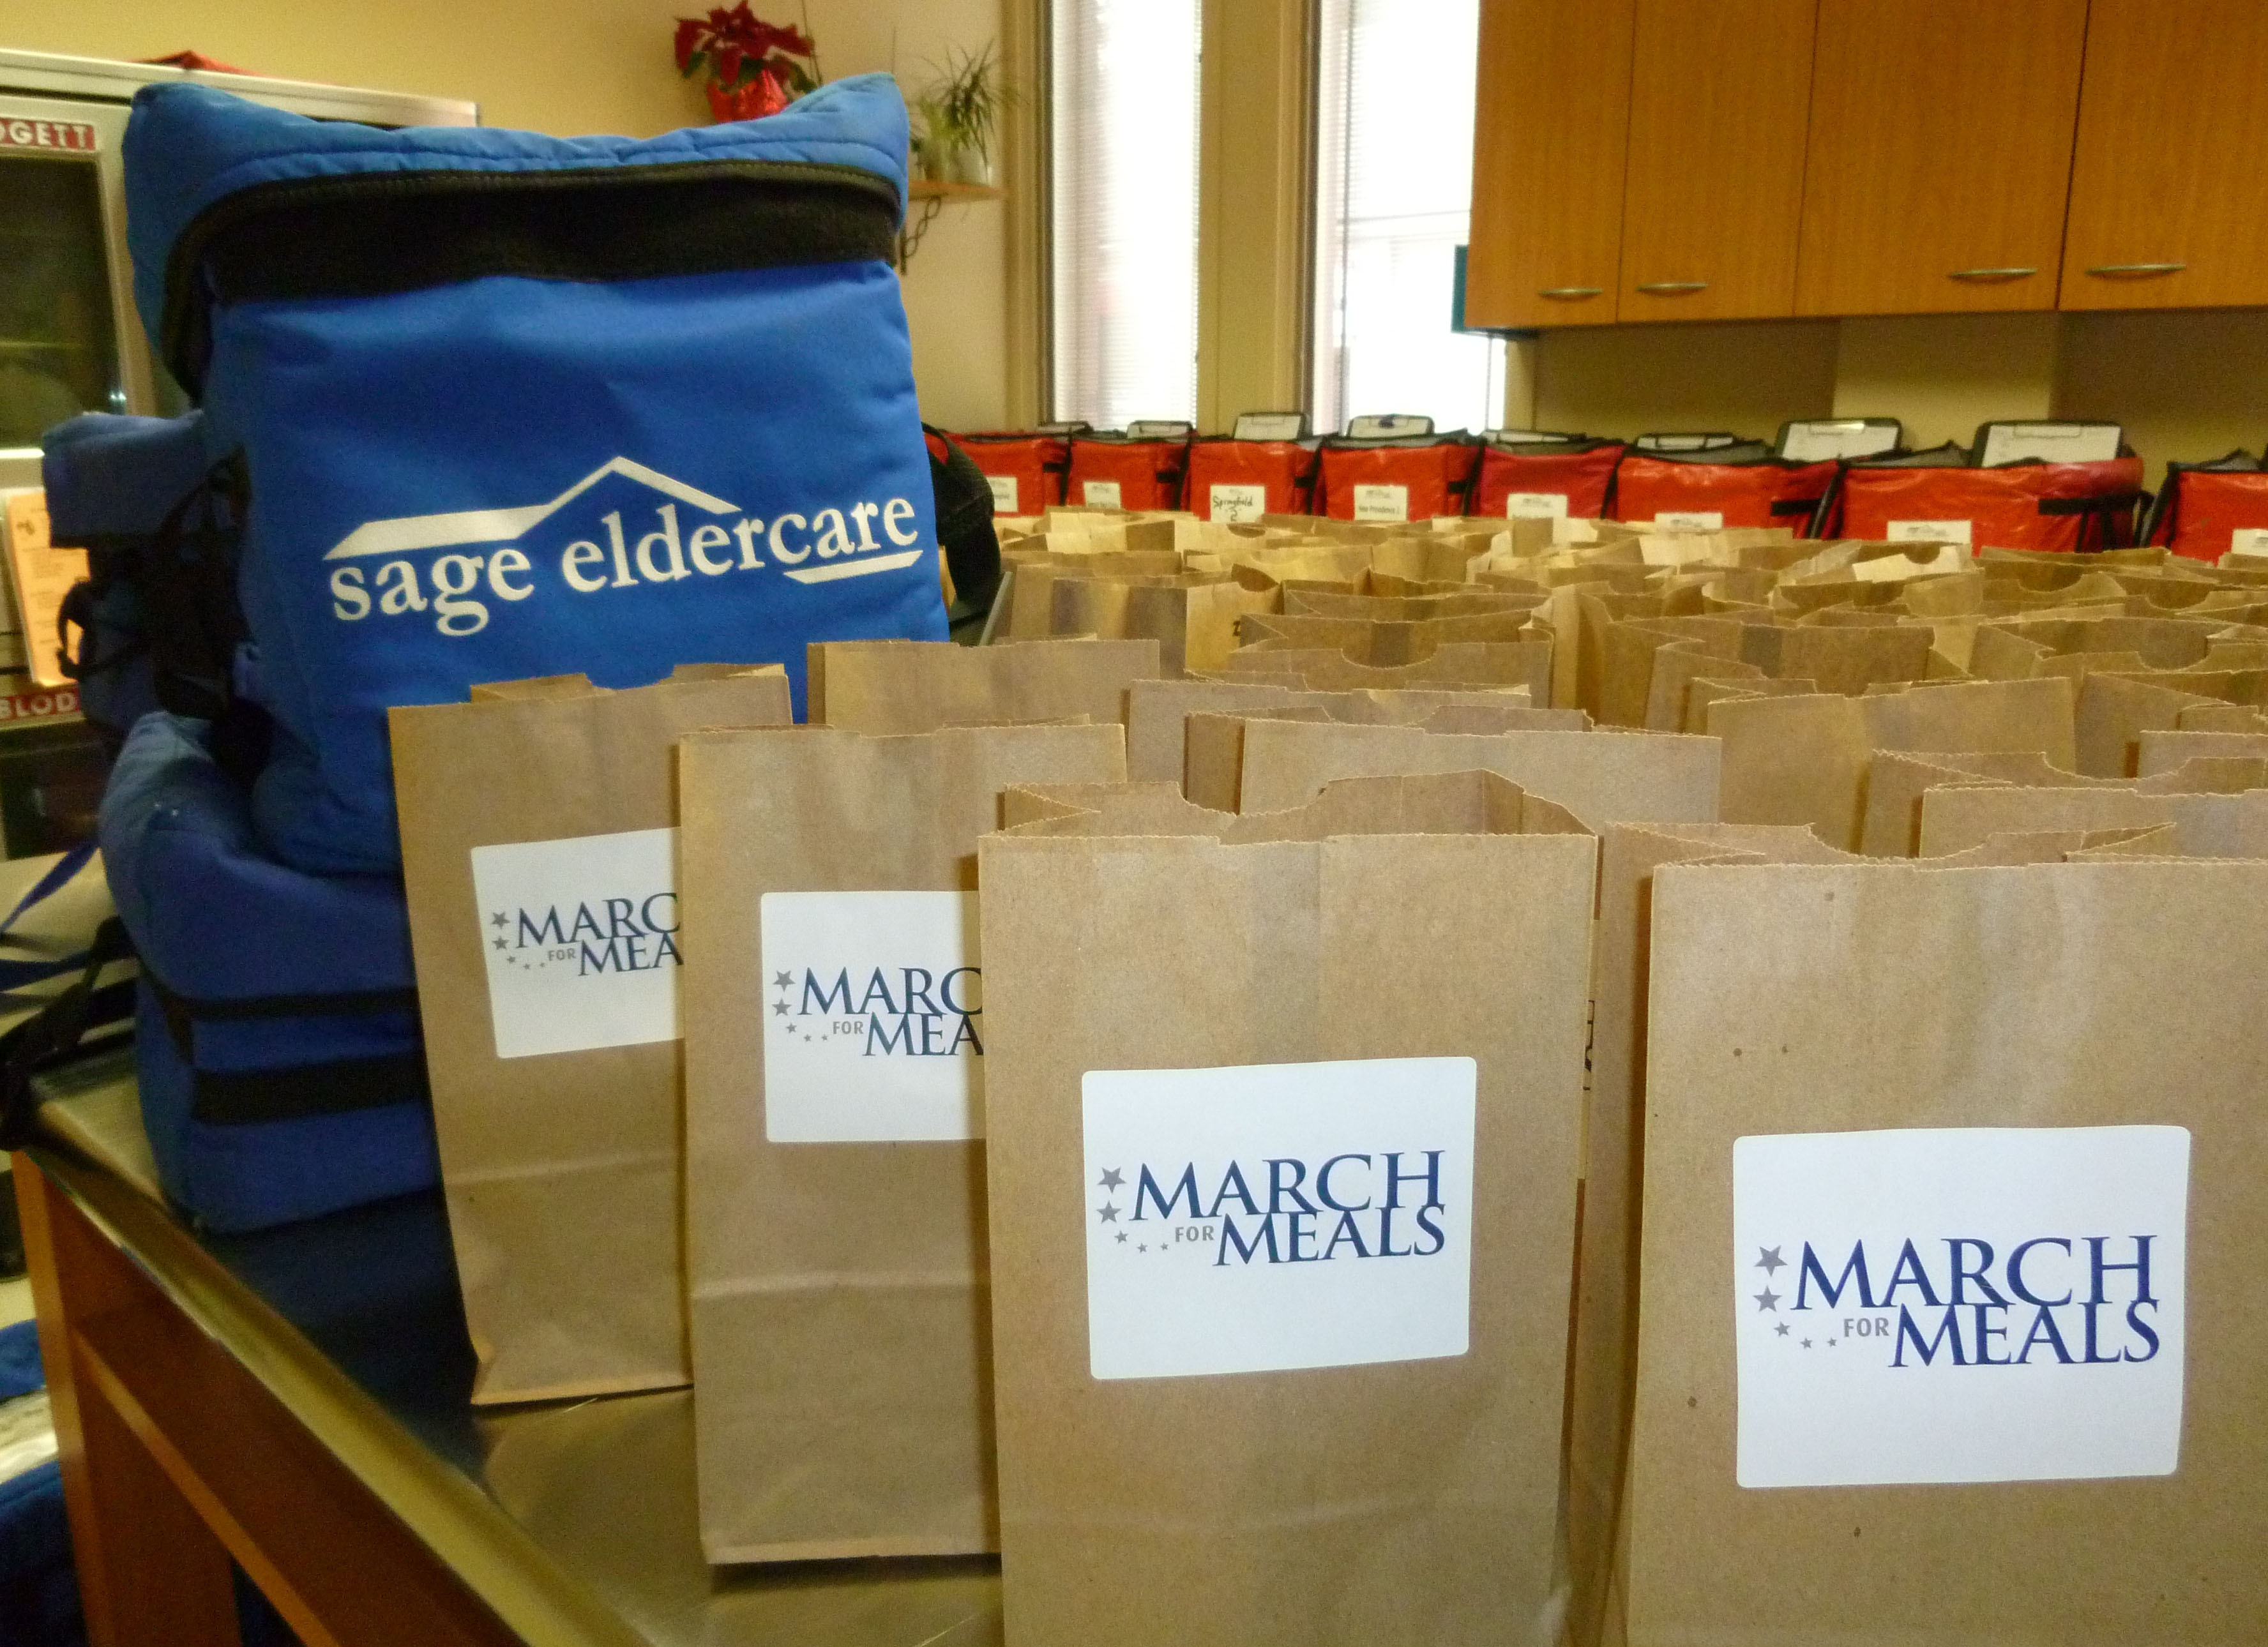 f00c478c39c0a5dae092_march_for_meals_2012_photo.jpg